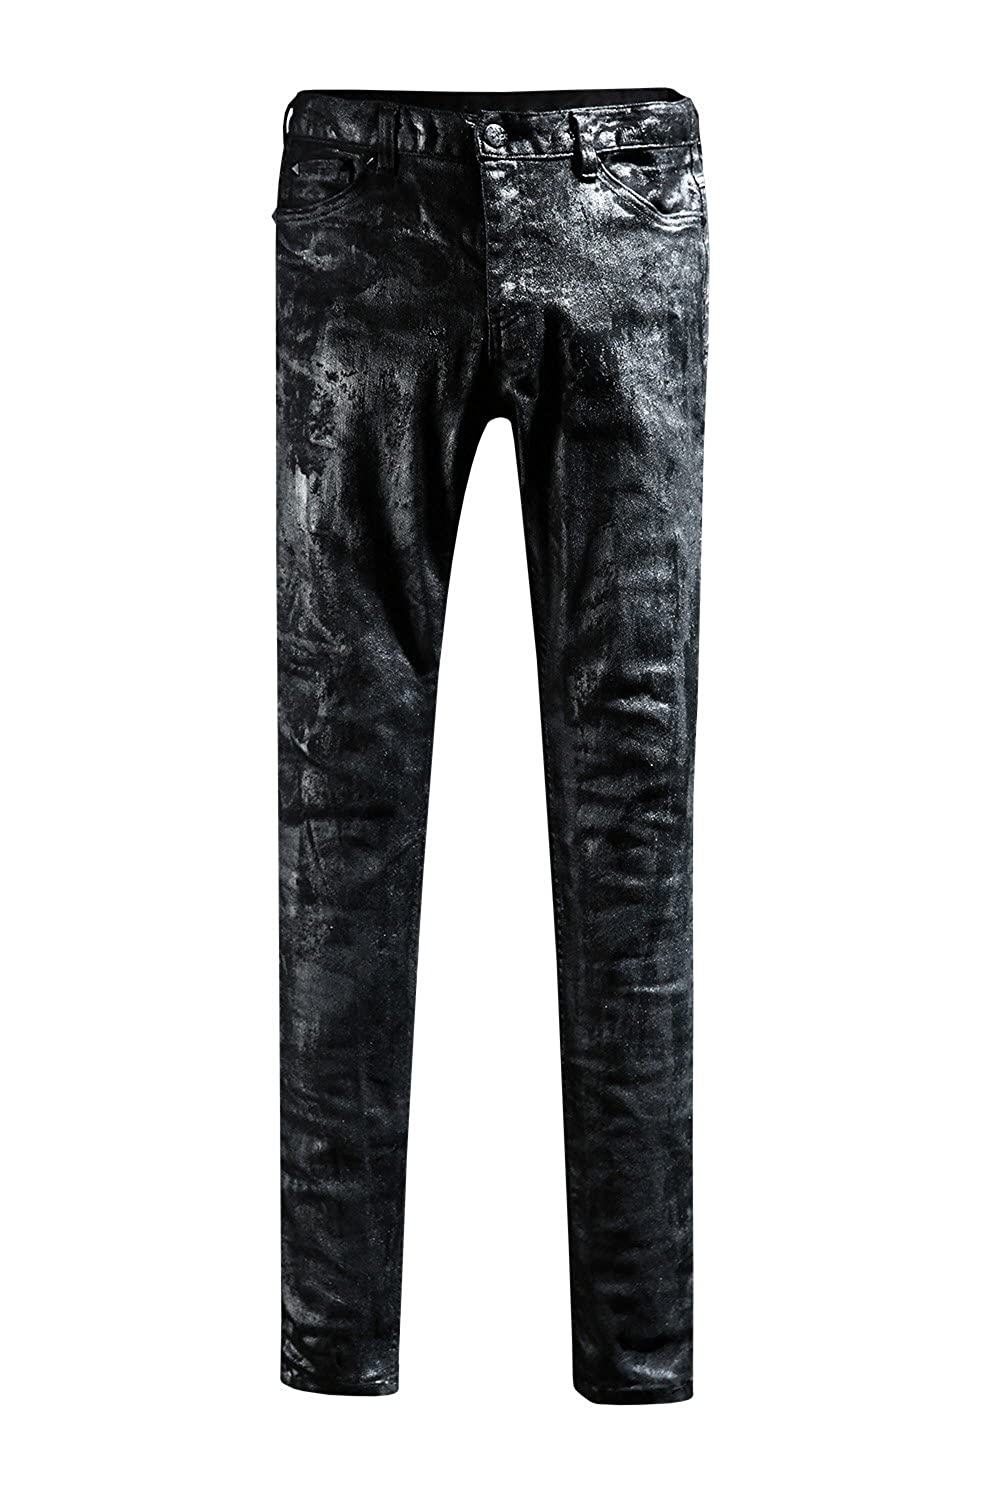 ByTheR Men's Chic Gothic Black Color Covering Custom Slim Skinny Grunge Jean